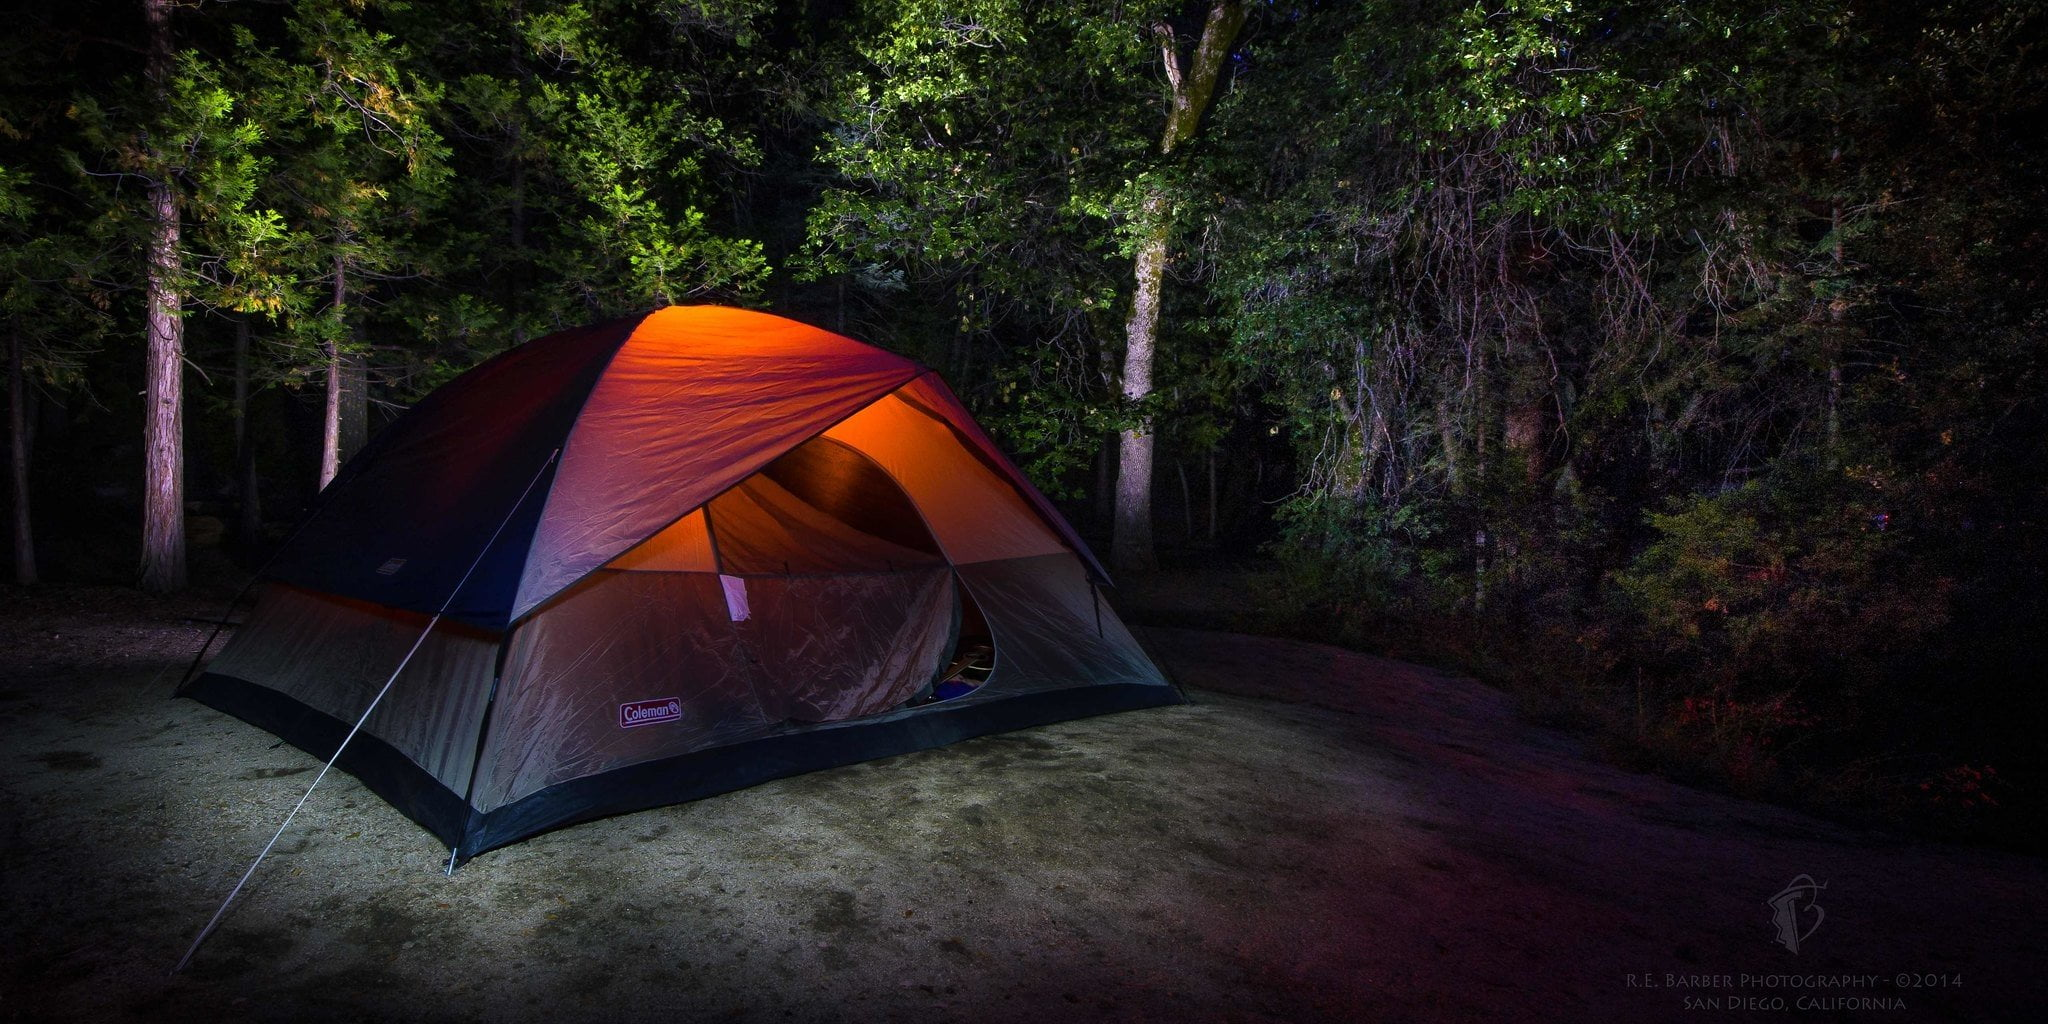 5 best blackout tents 2020: dark room tents for better sleep while camping